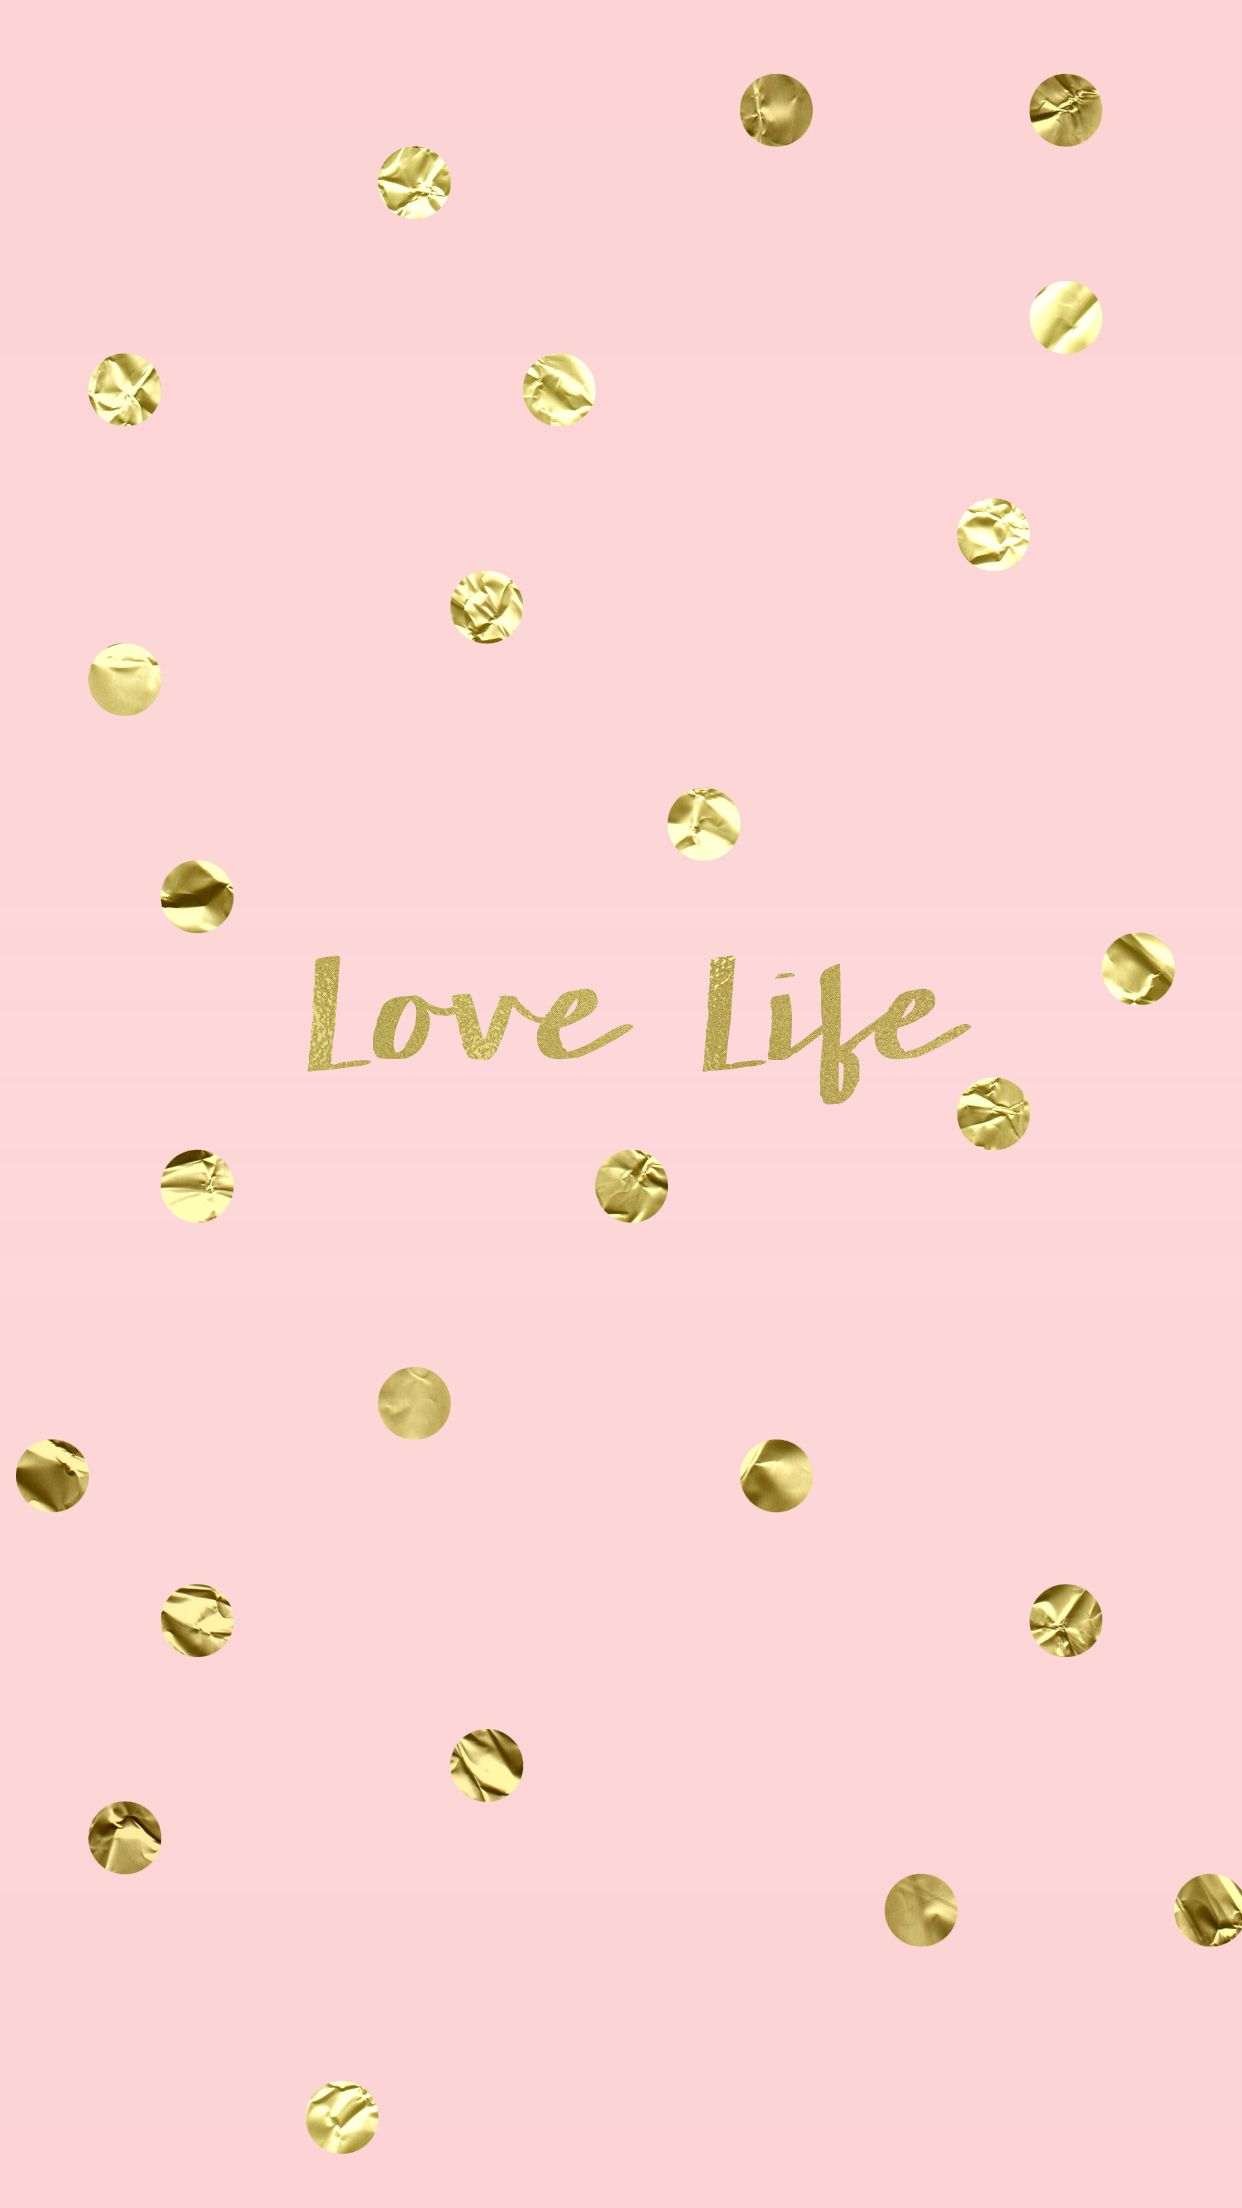 love life blush pink gold iphone wallpaper background | wallpapers